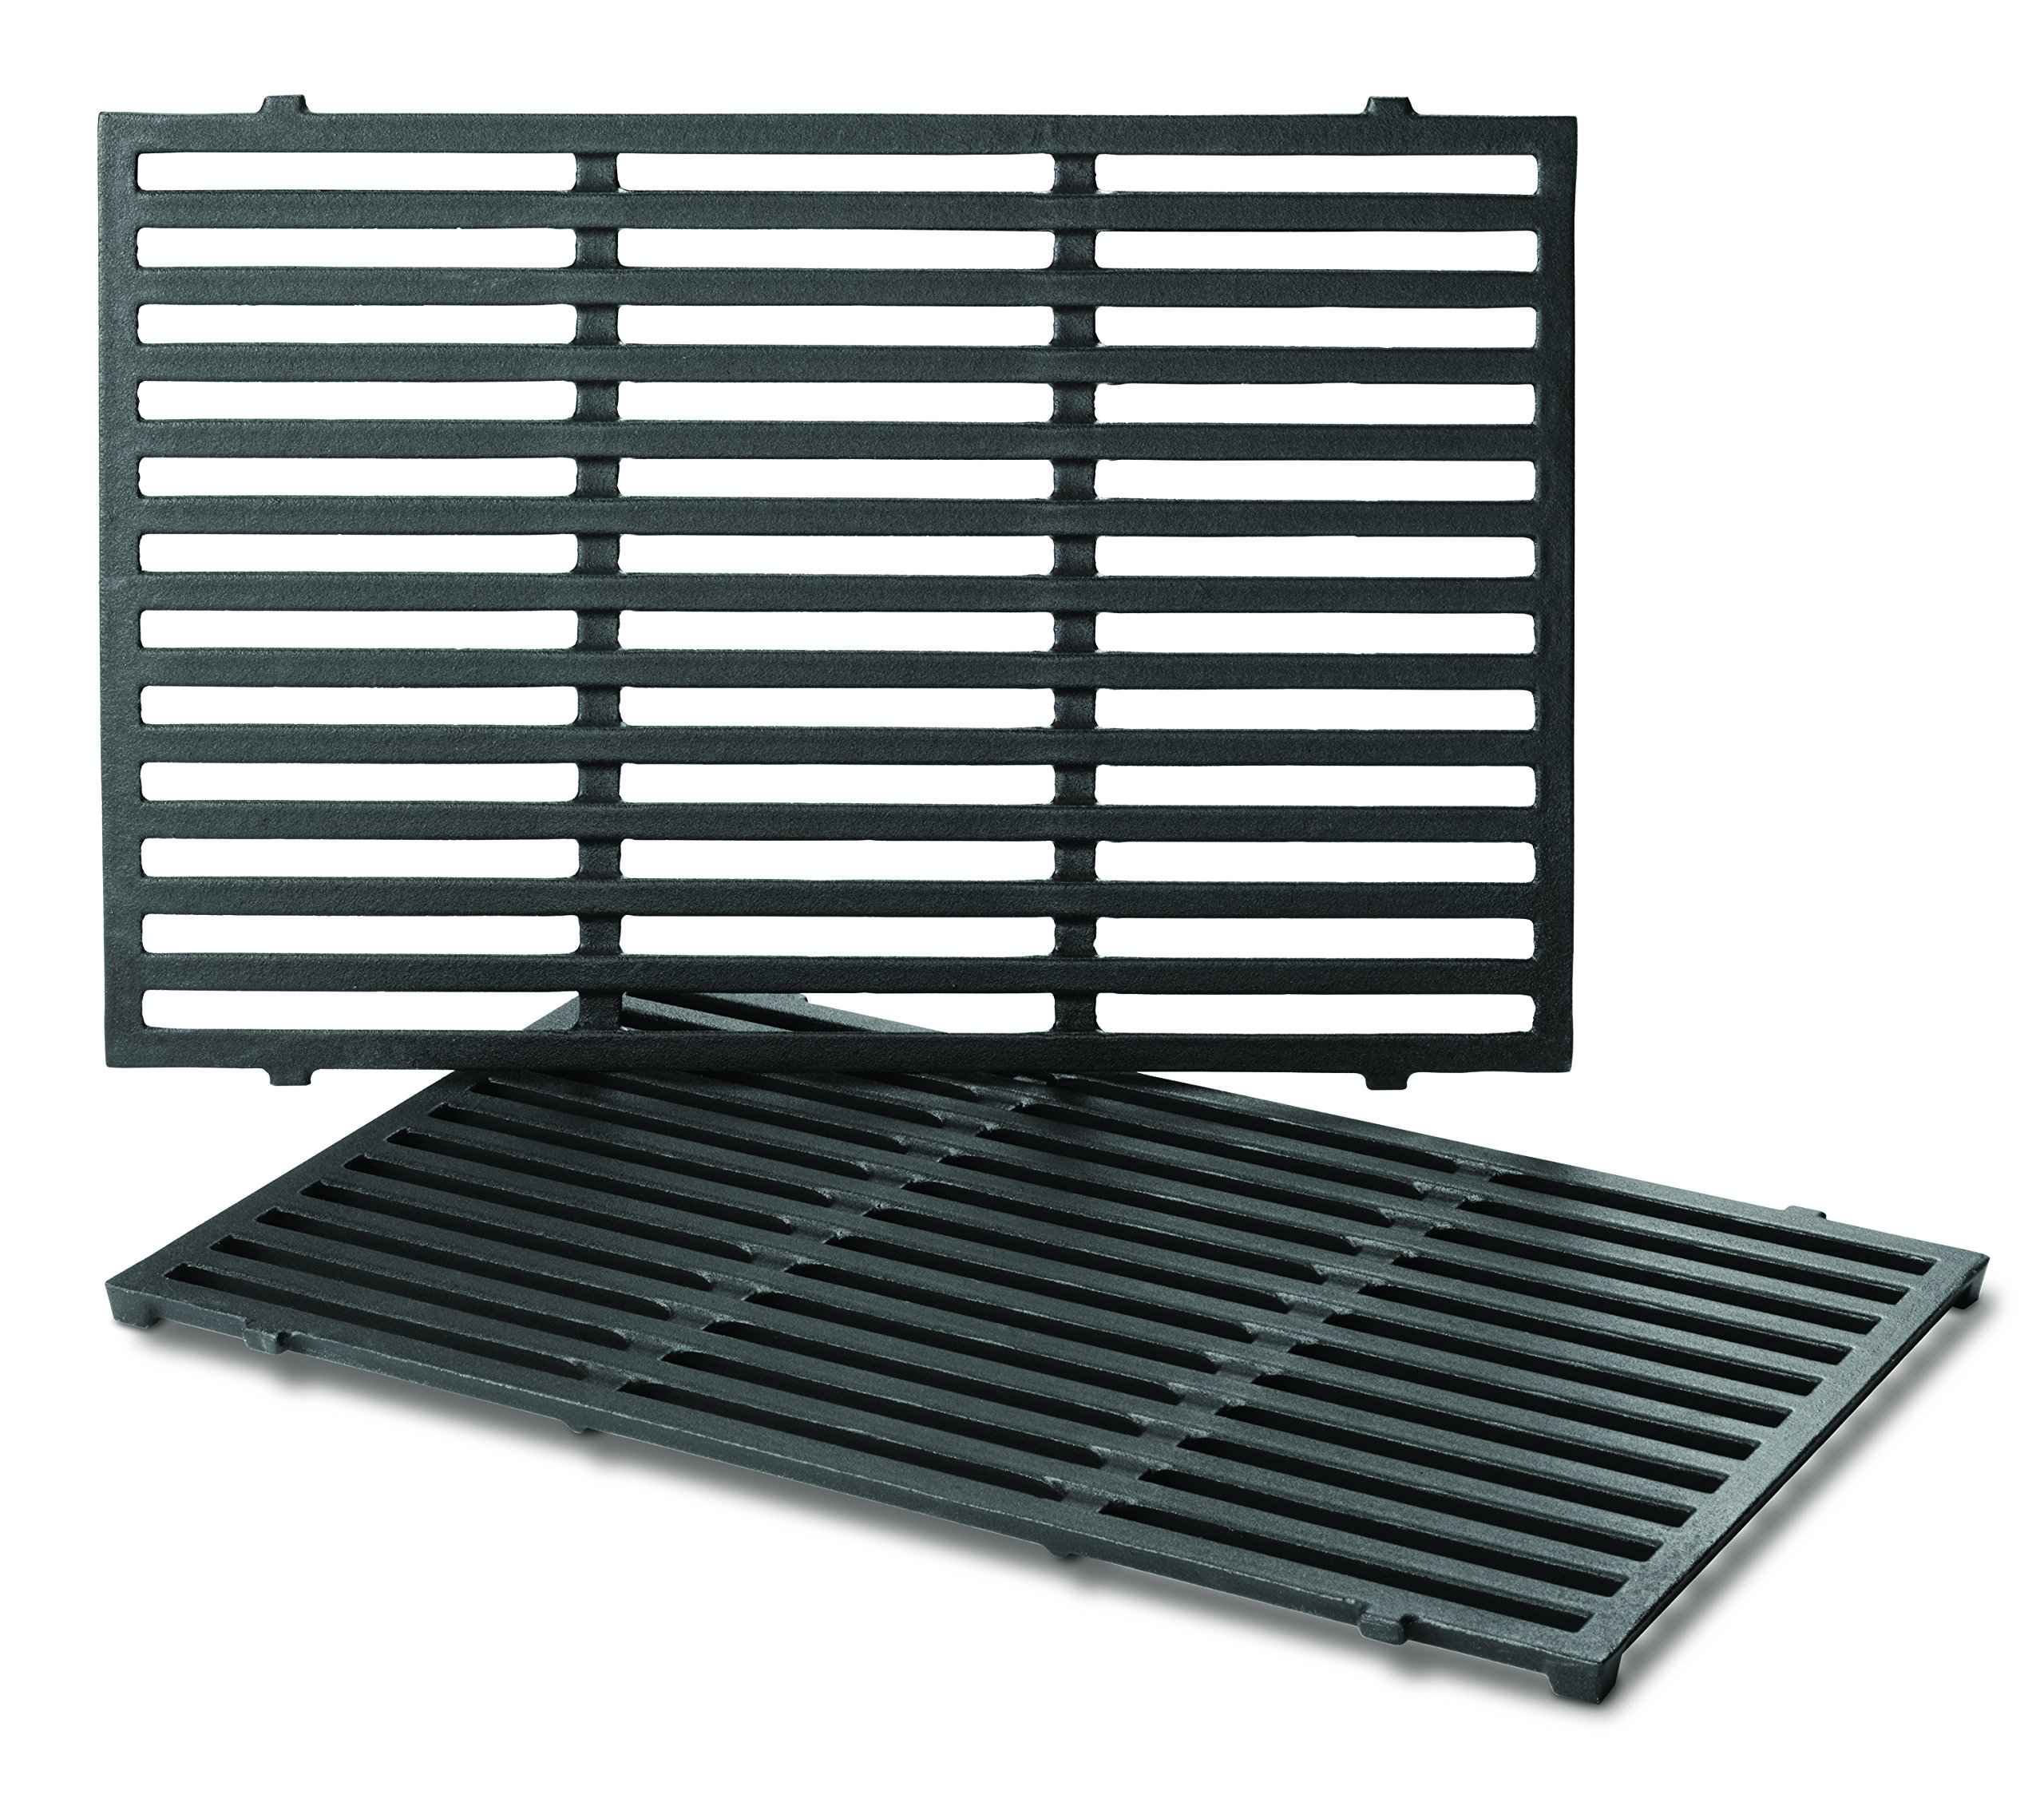 Weber Series Gas Grills (17.5 x 11.9 x 0.5 Each) 7638 Porcelain-Enameled Cast Iron Cooking Grates for Spirit 300, Pack of 2 by Weber